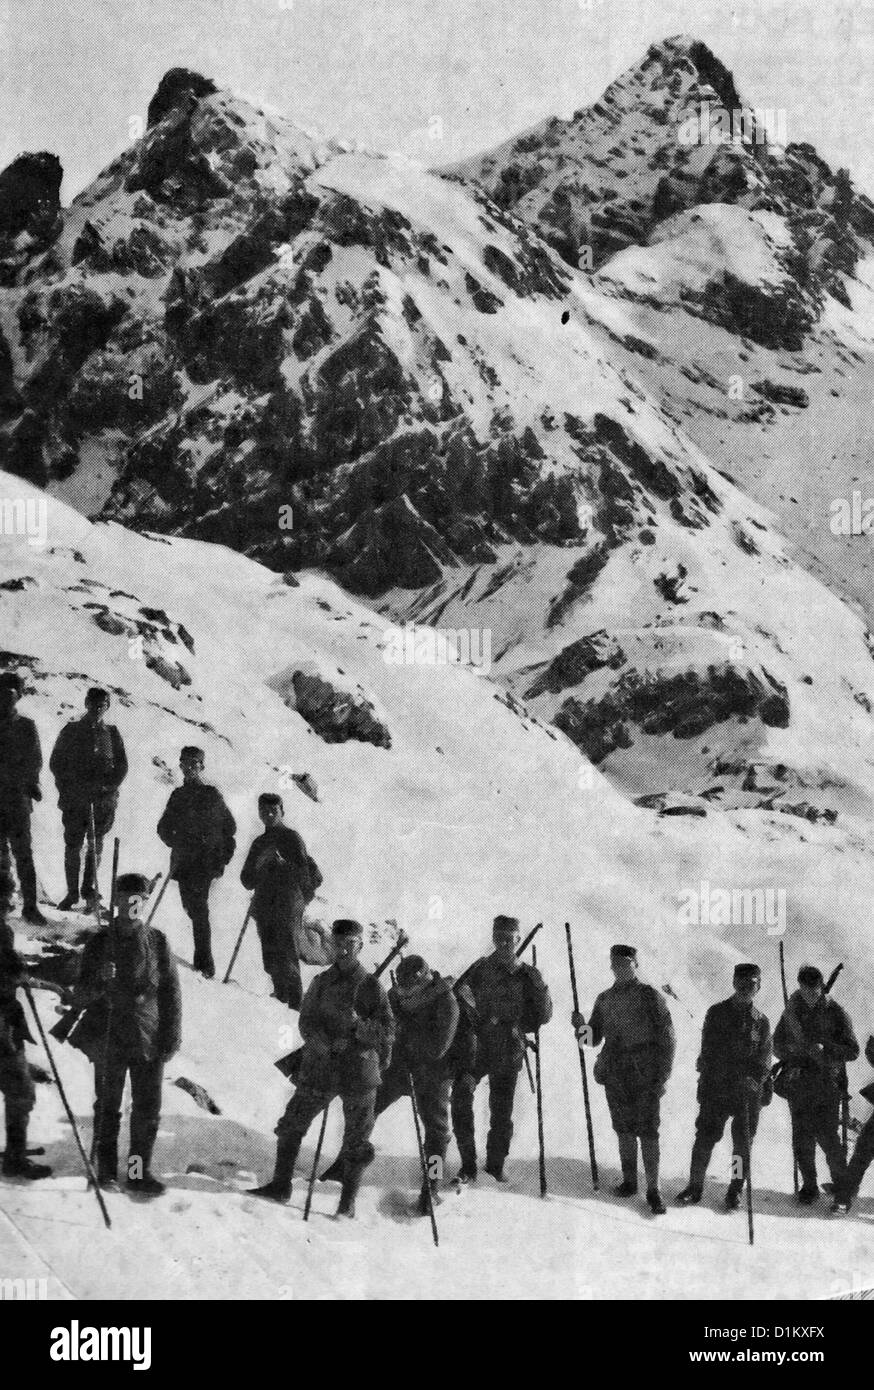 Austro-Hungarian troops in the Carpathian Mountains during World War I, 1917 - Stock Image